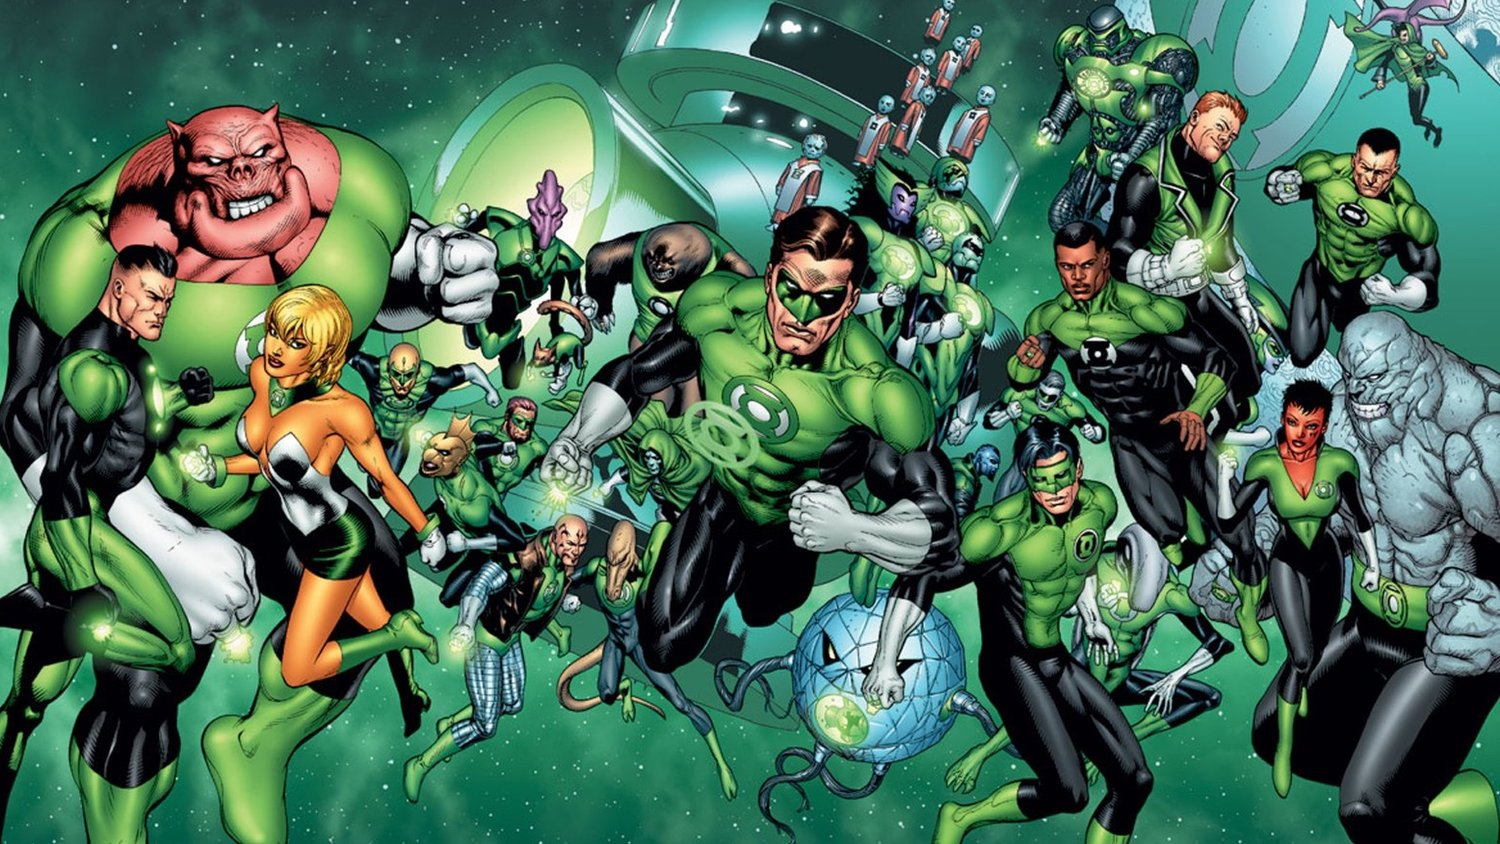 A Green Lantern Character Is Rumored to Appear in JUSTICE LEAGUE